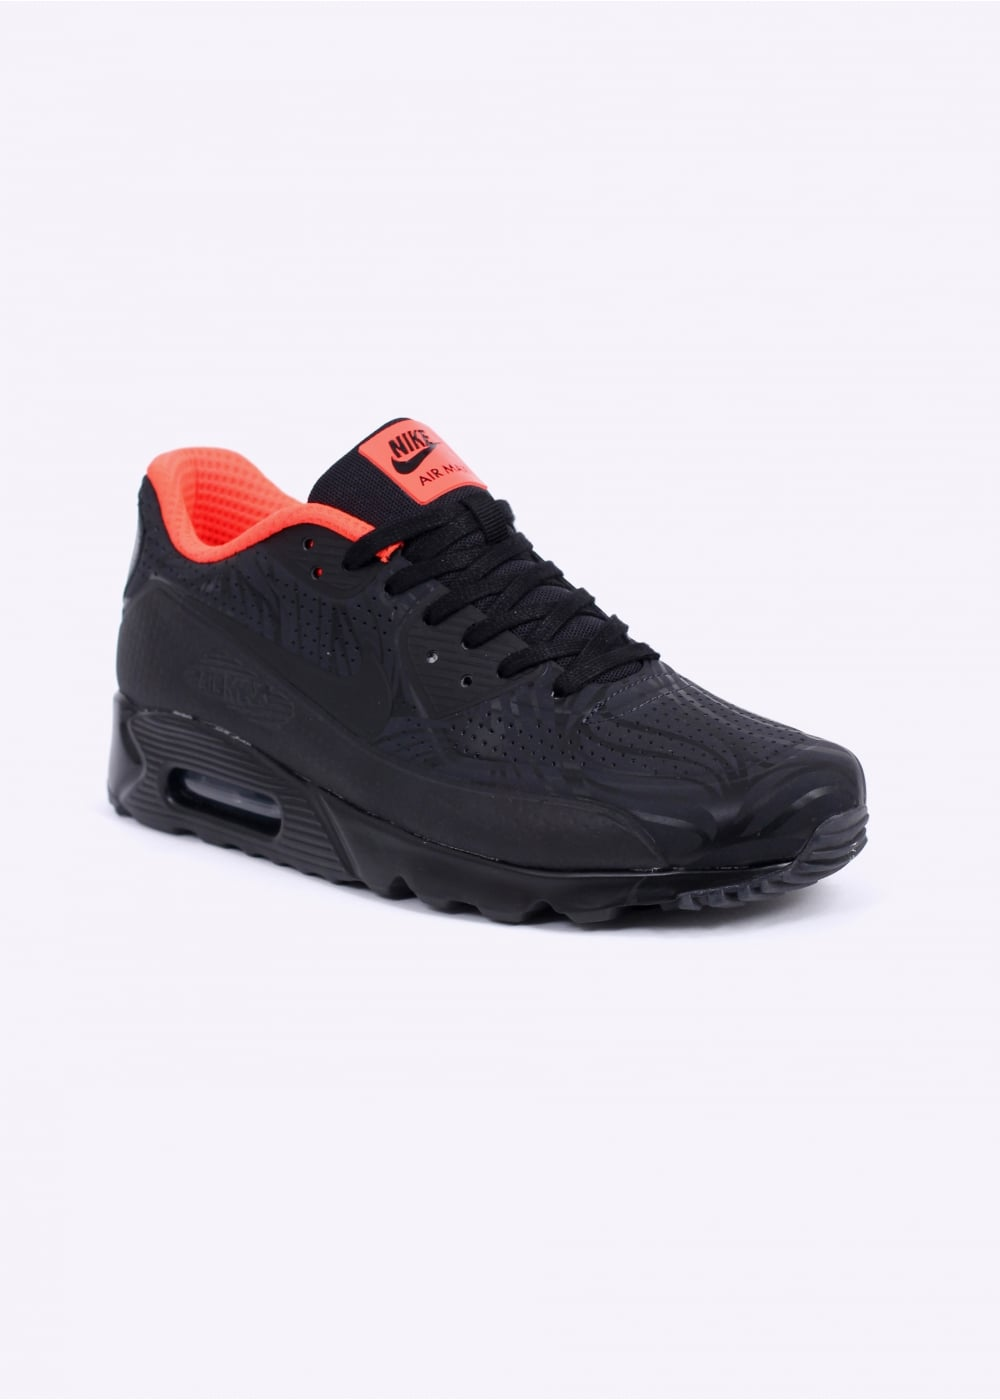 0c17479b0cbf ... new zealand x neymar air max 90 ultra trainers black fd2ad 82984